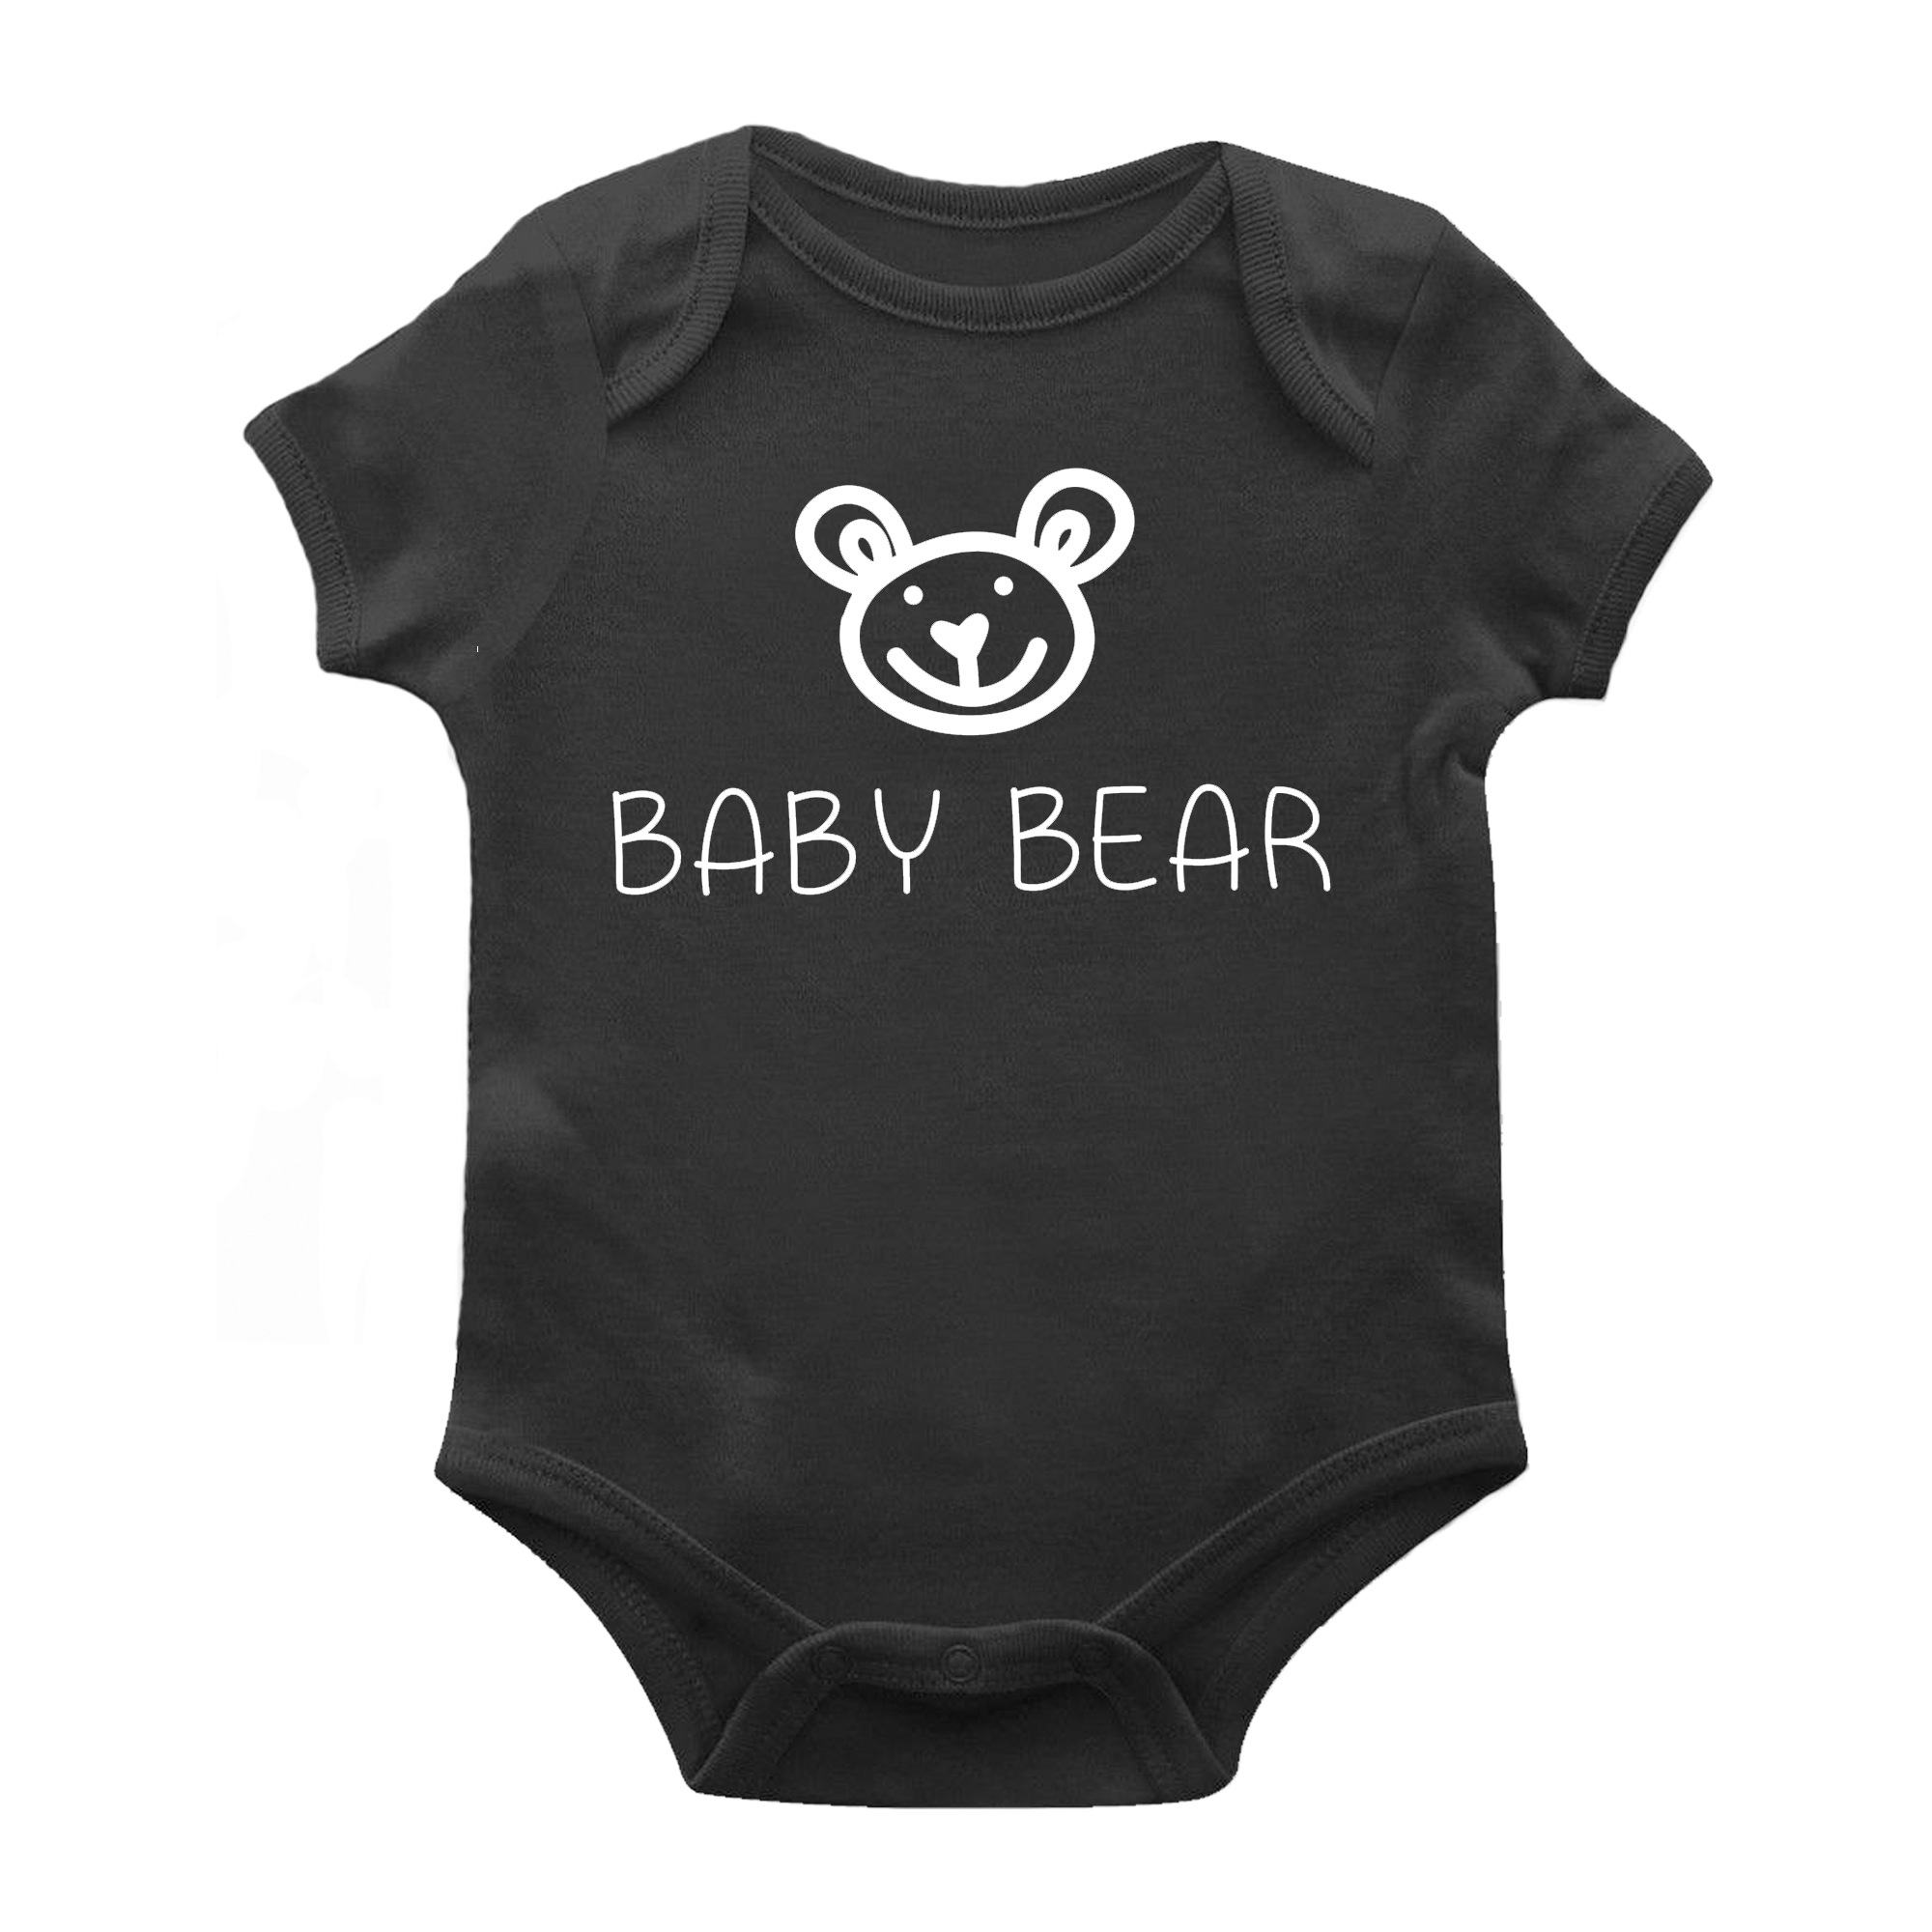 Personalised baby bear grow boys present gift onesie all in one blue image is loading personalised baby bear grow boys present gift onesie negle Gallery